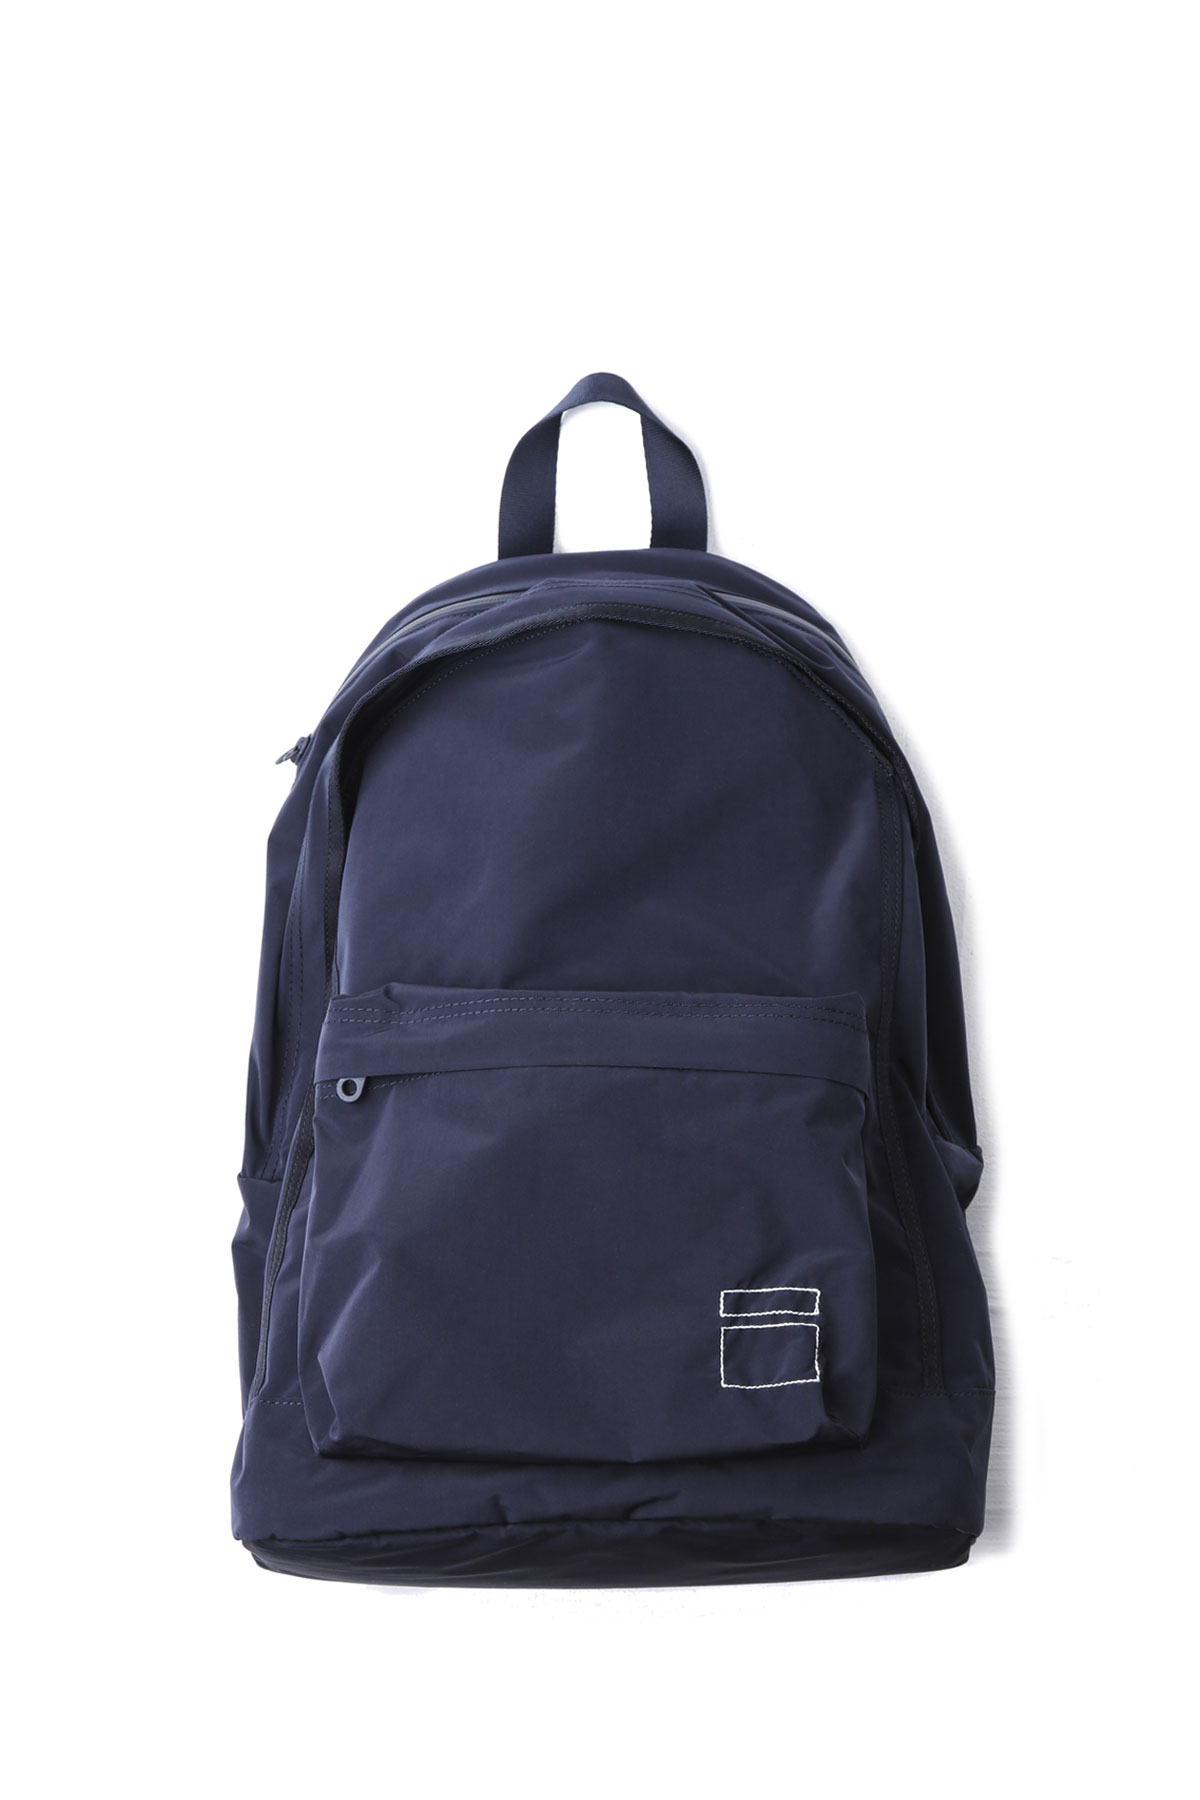 Blankof : BLG 01 23L Day Pack (Navy)